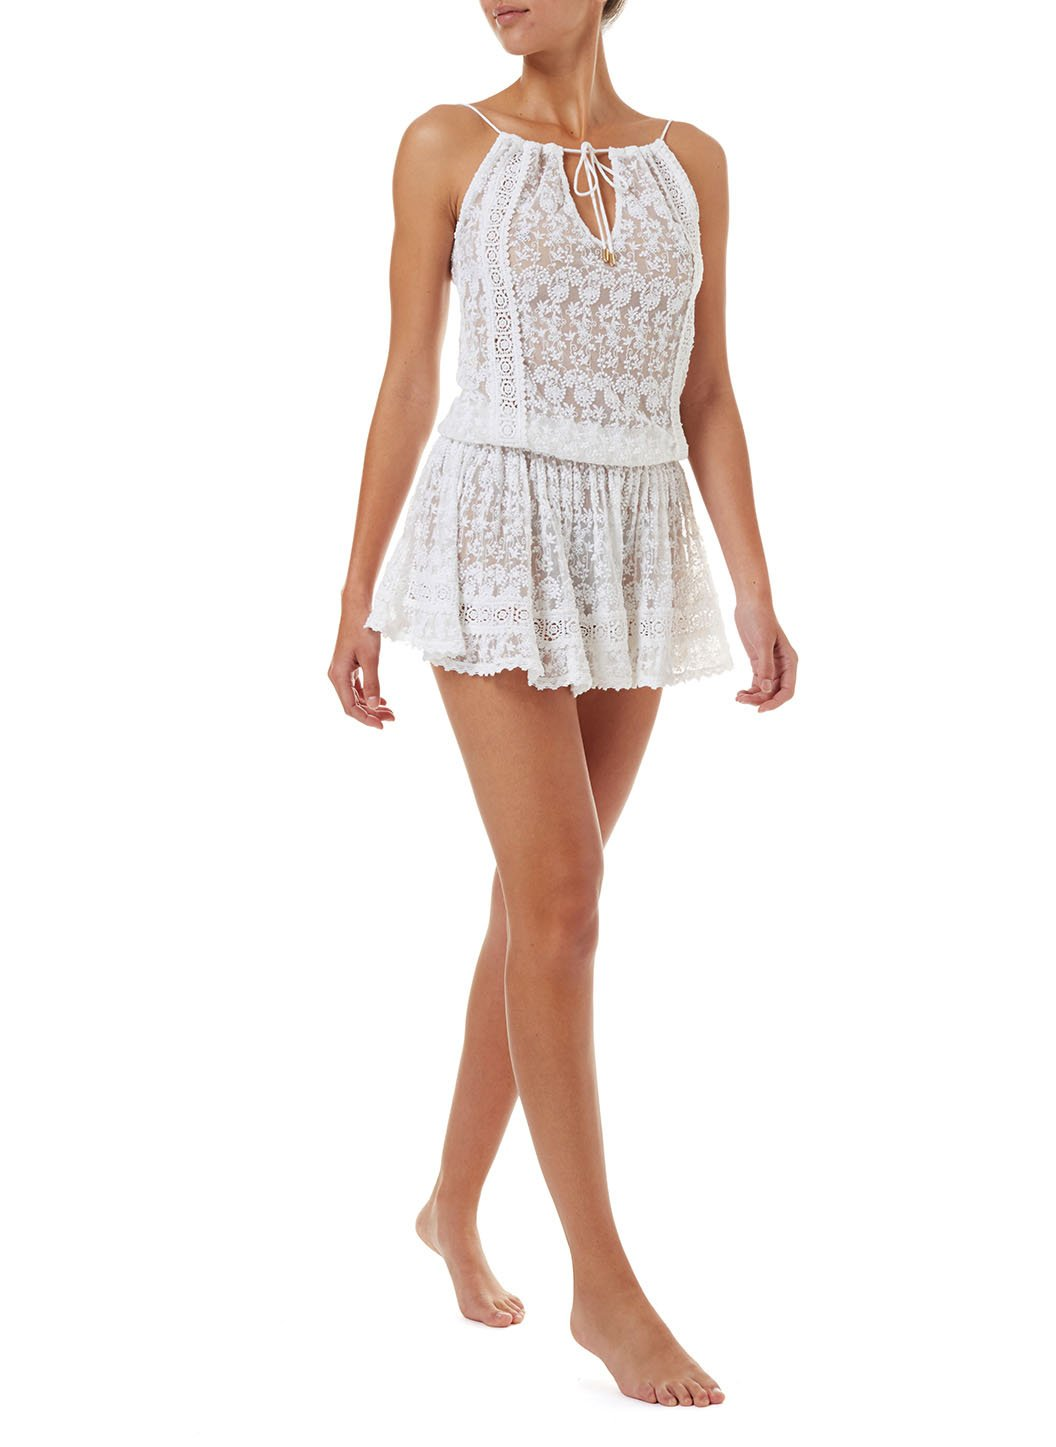 zoe white embroidered openback short beach dress 2019 F